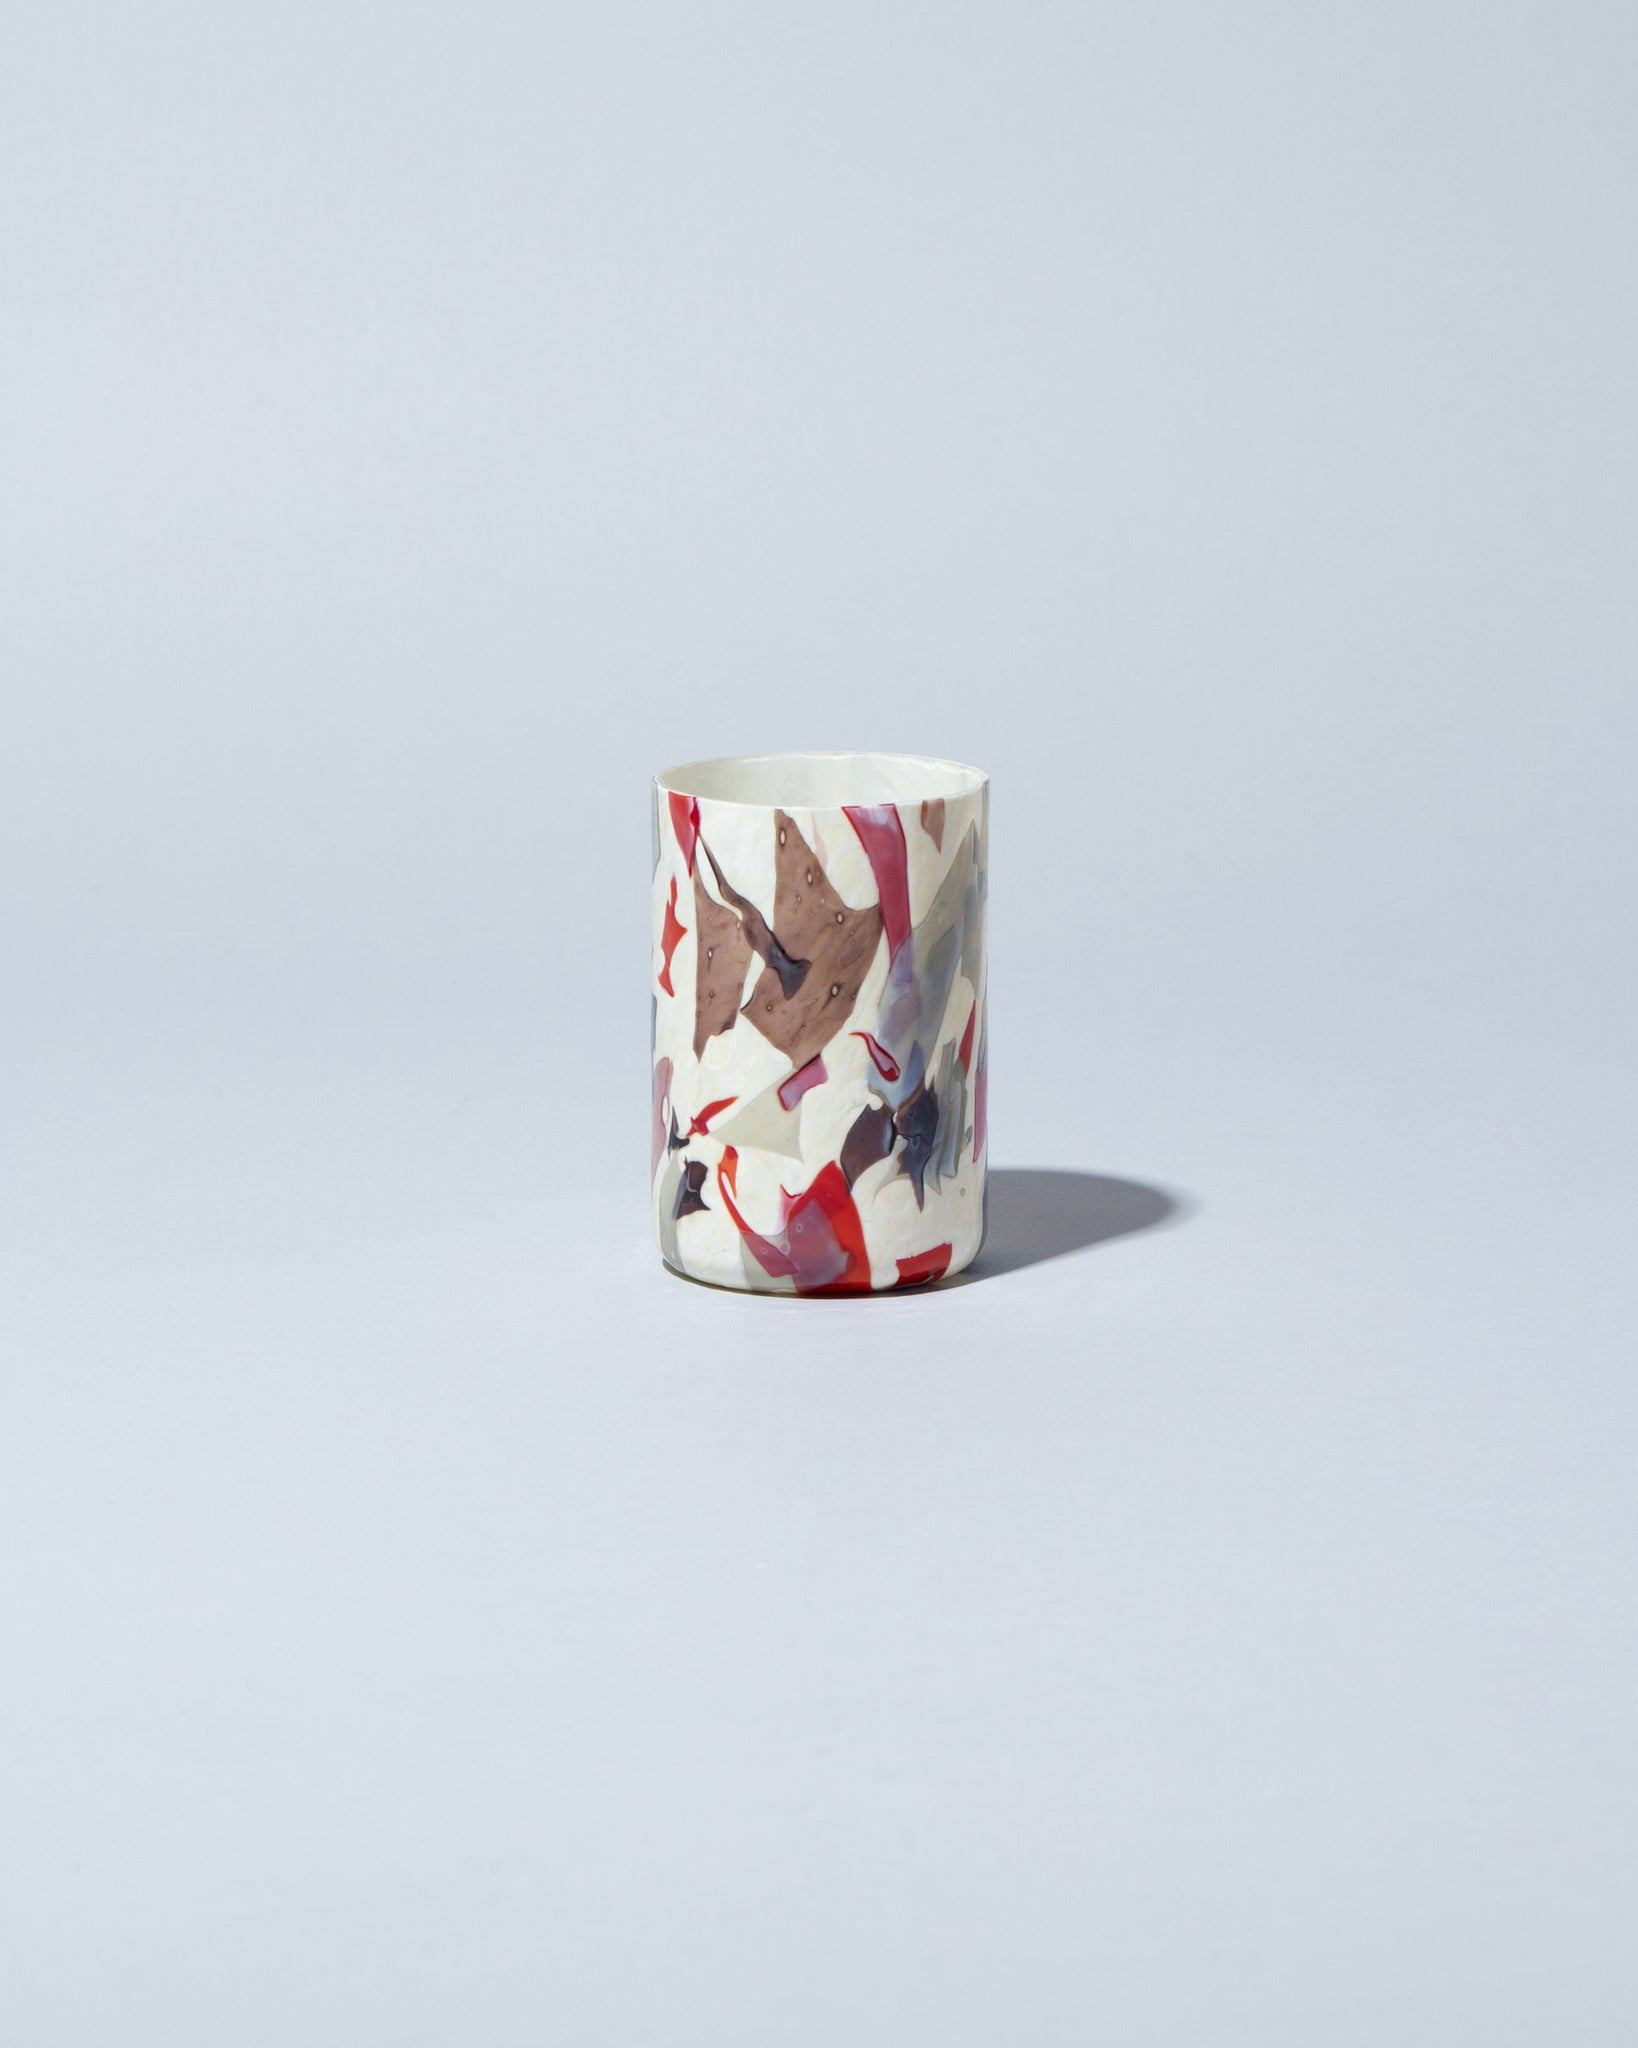 Stories of Italy Nougat Glass Tumbler on light color background.